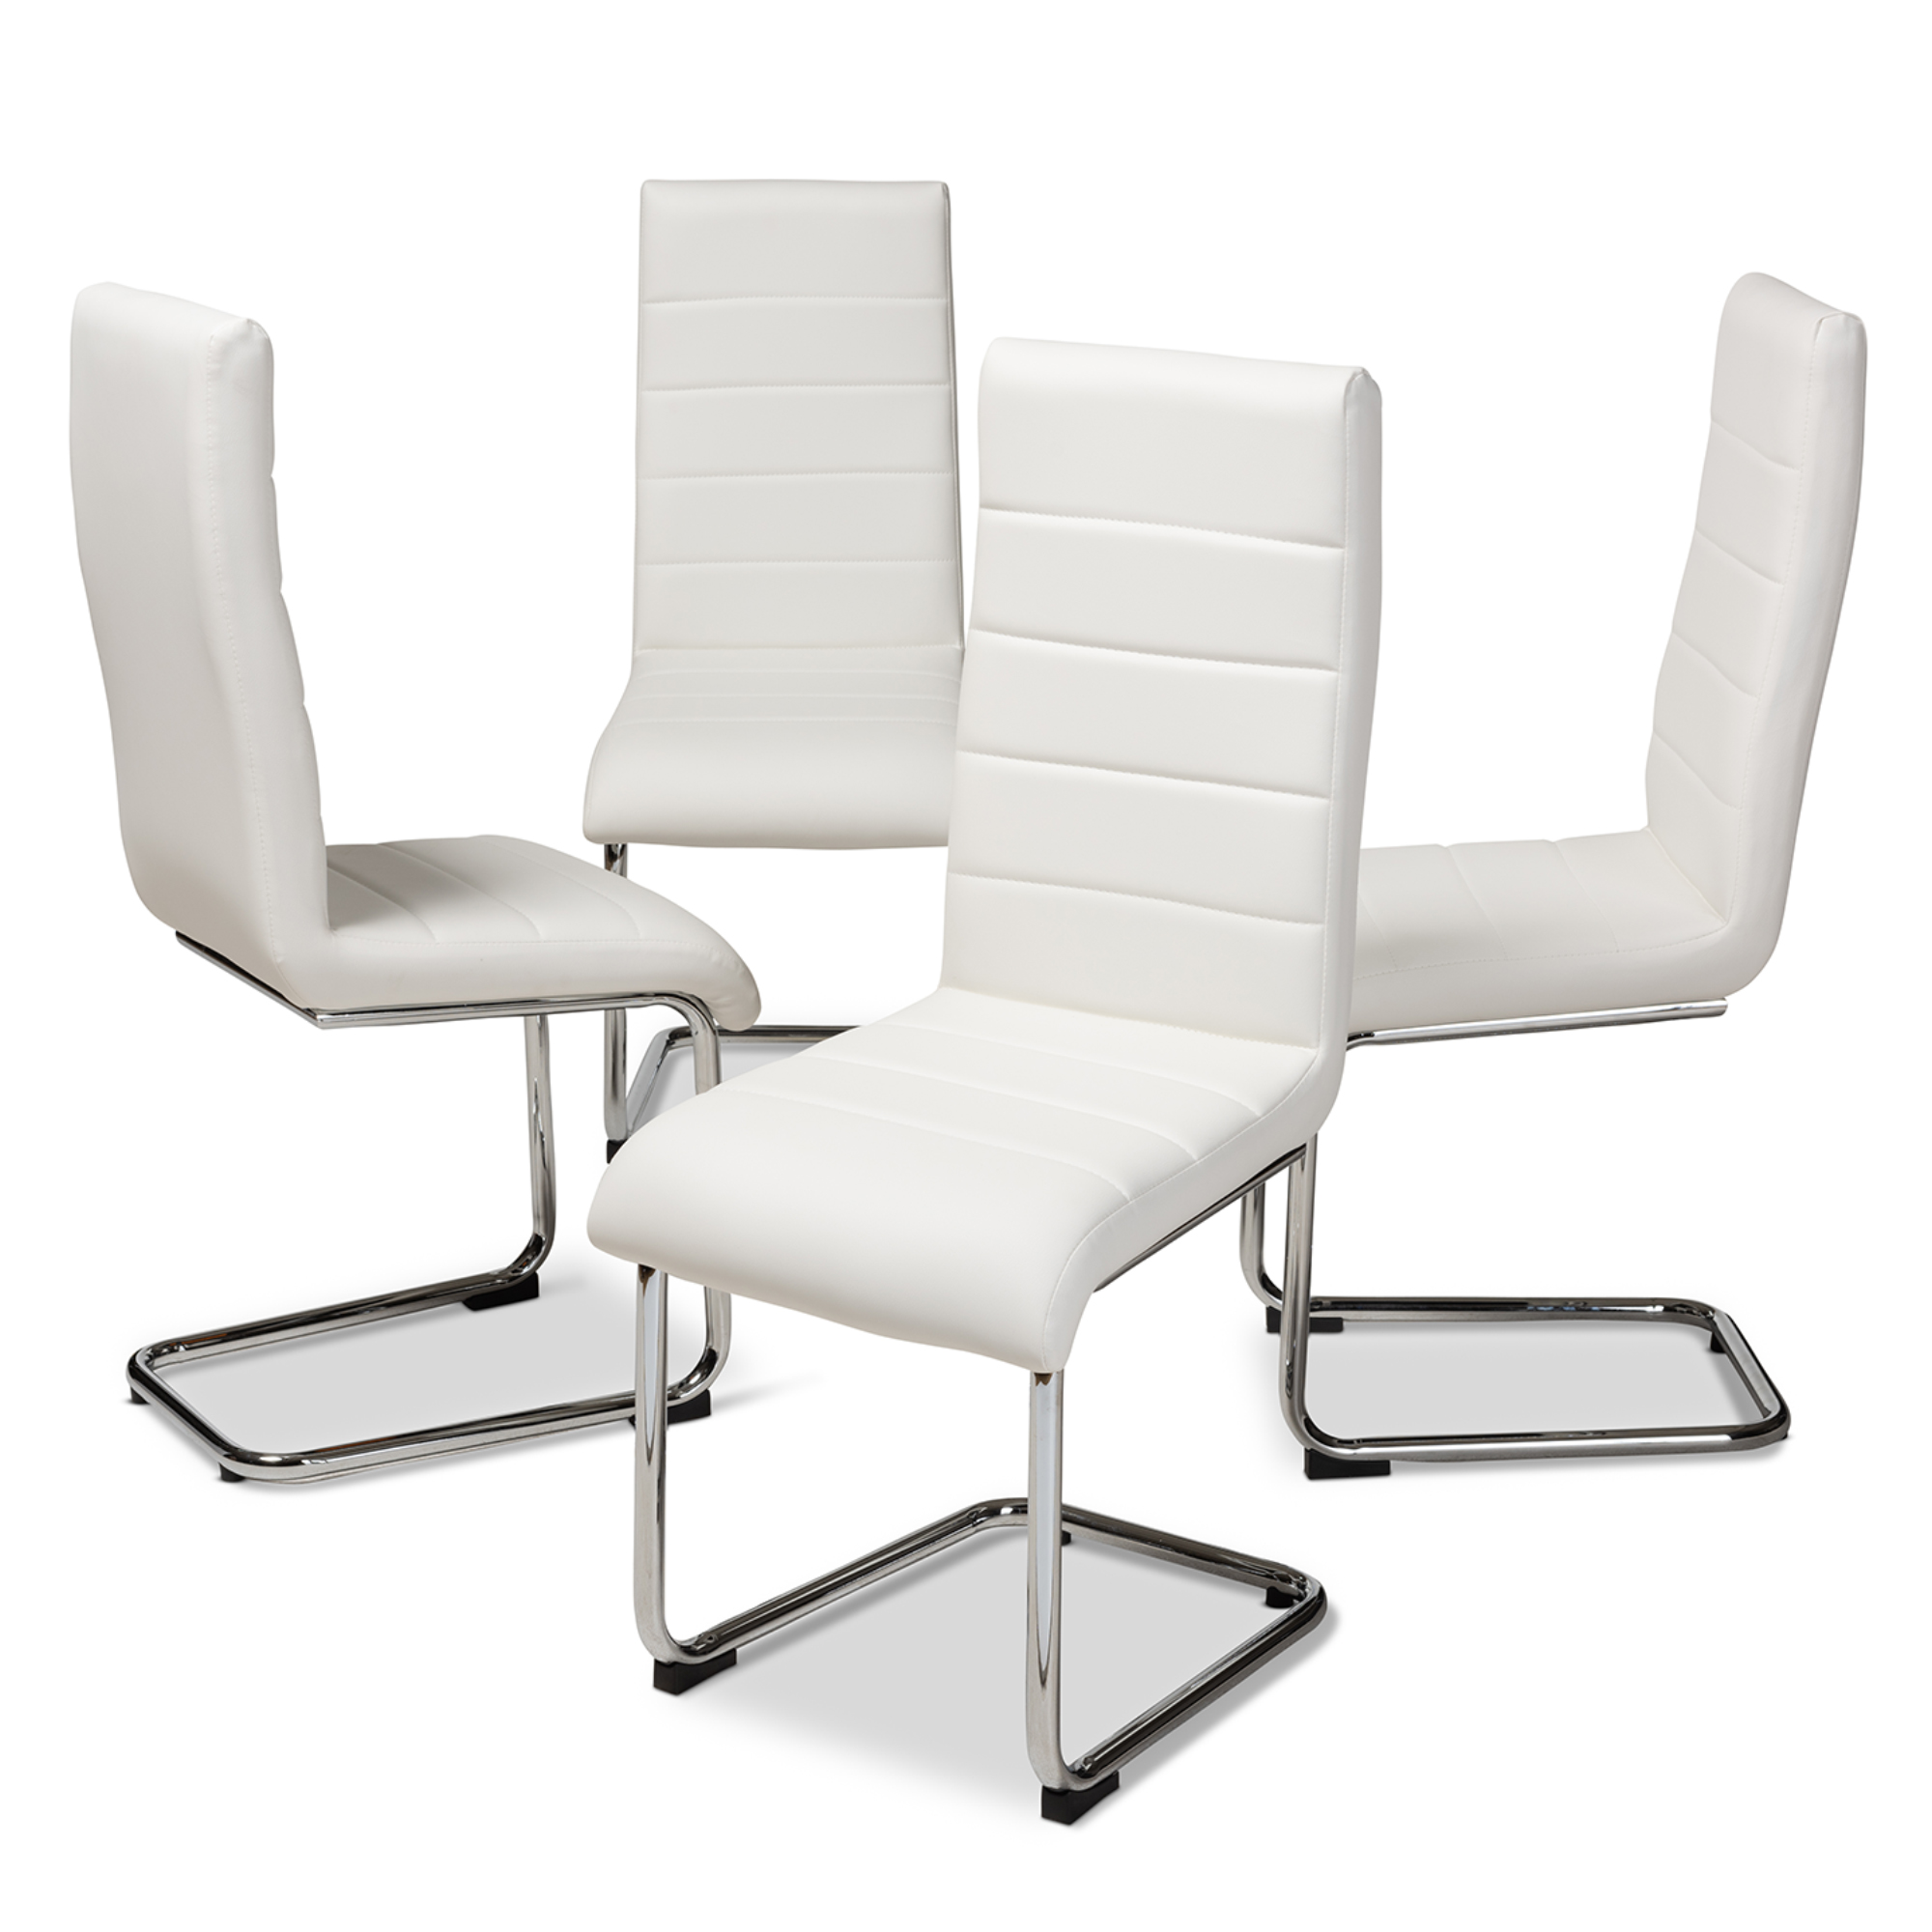 Picture of: Baxton Studio Marlys Modern And Contemporary White Faux Leather Upholstered Dining Chair Set Of 4